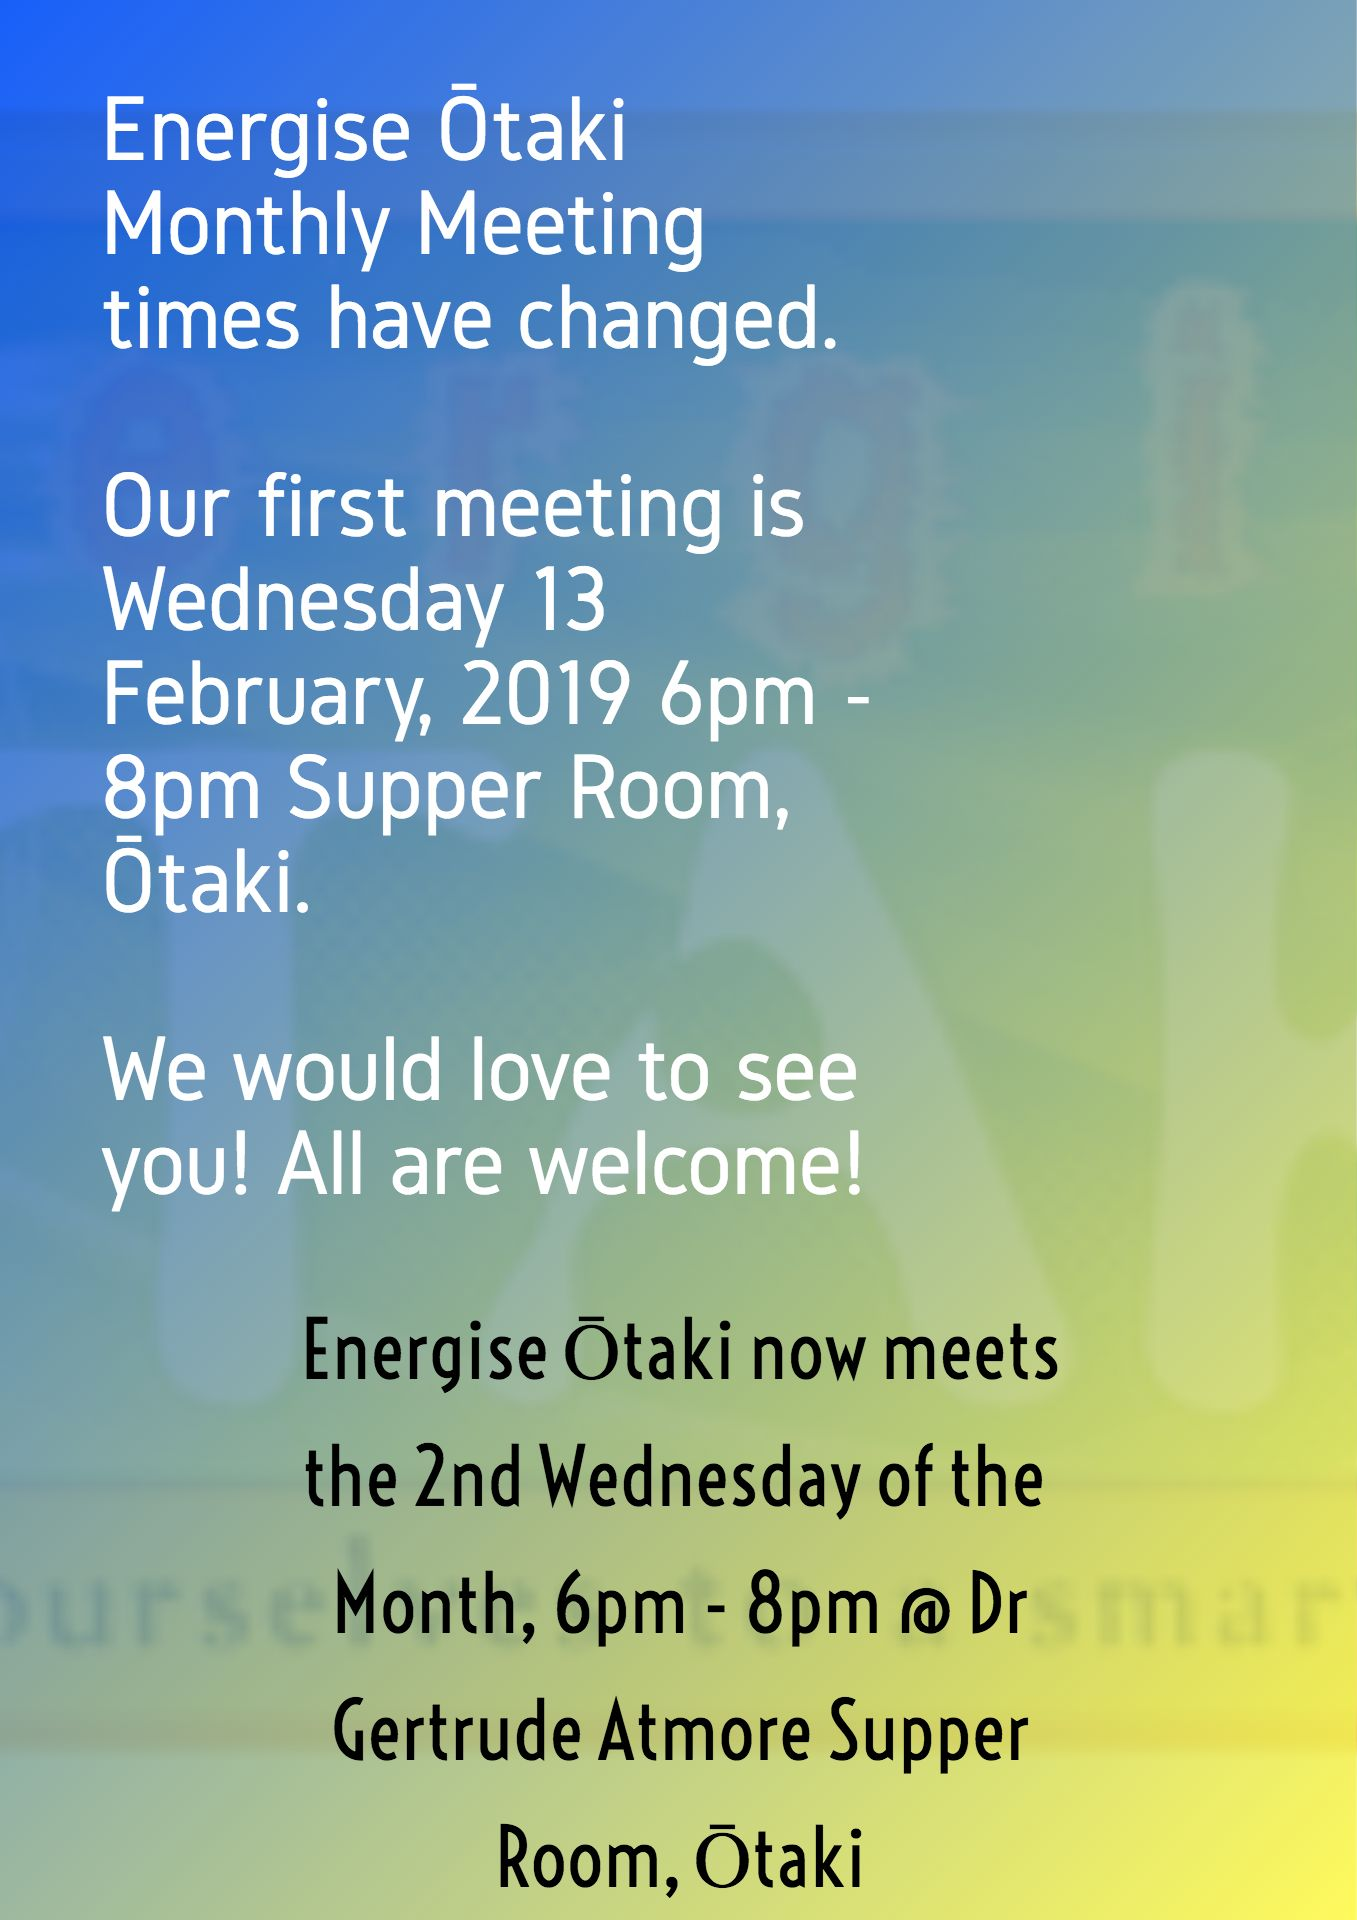 Our Meeting Times Have Changed